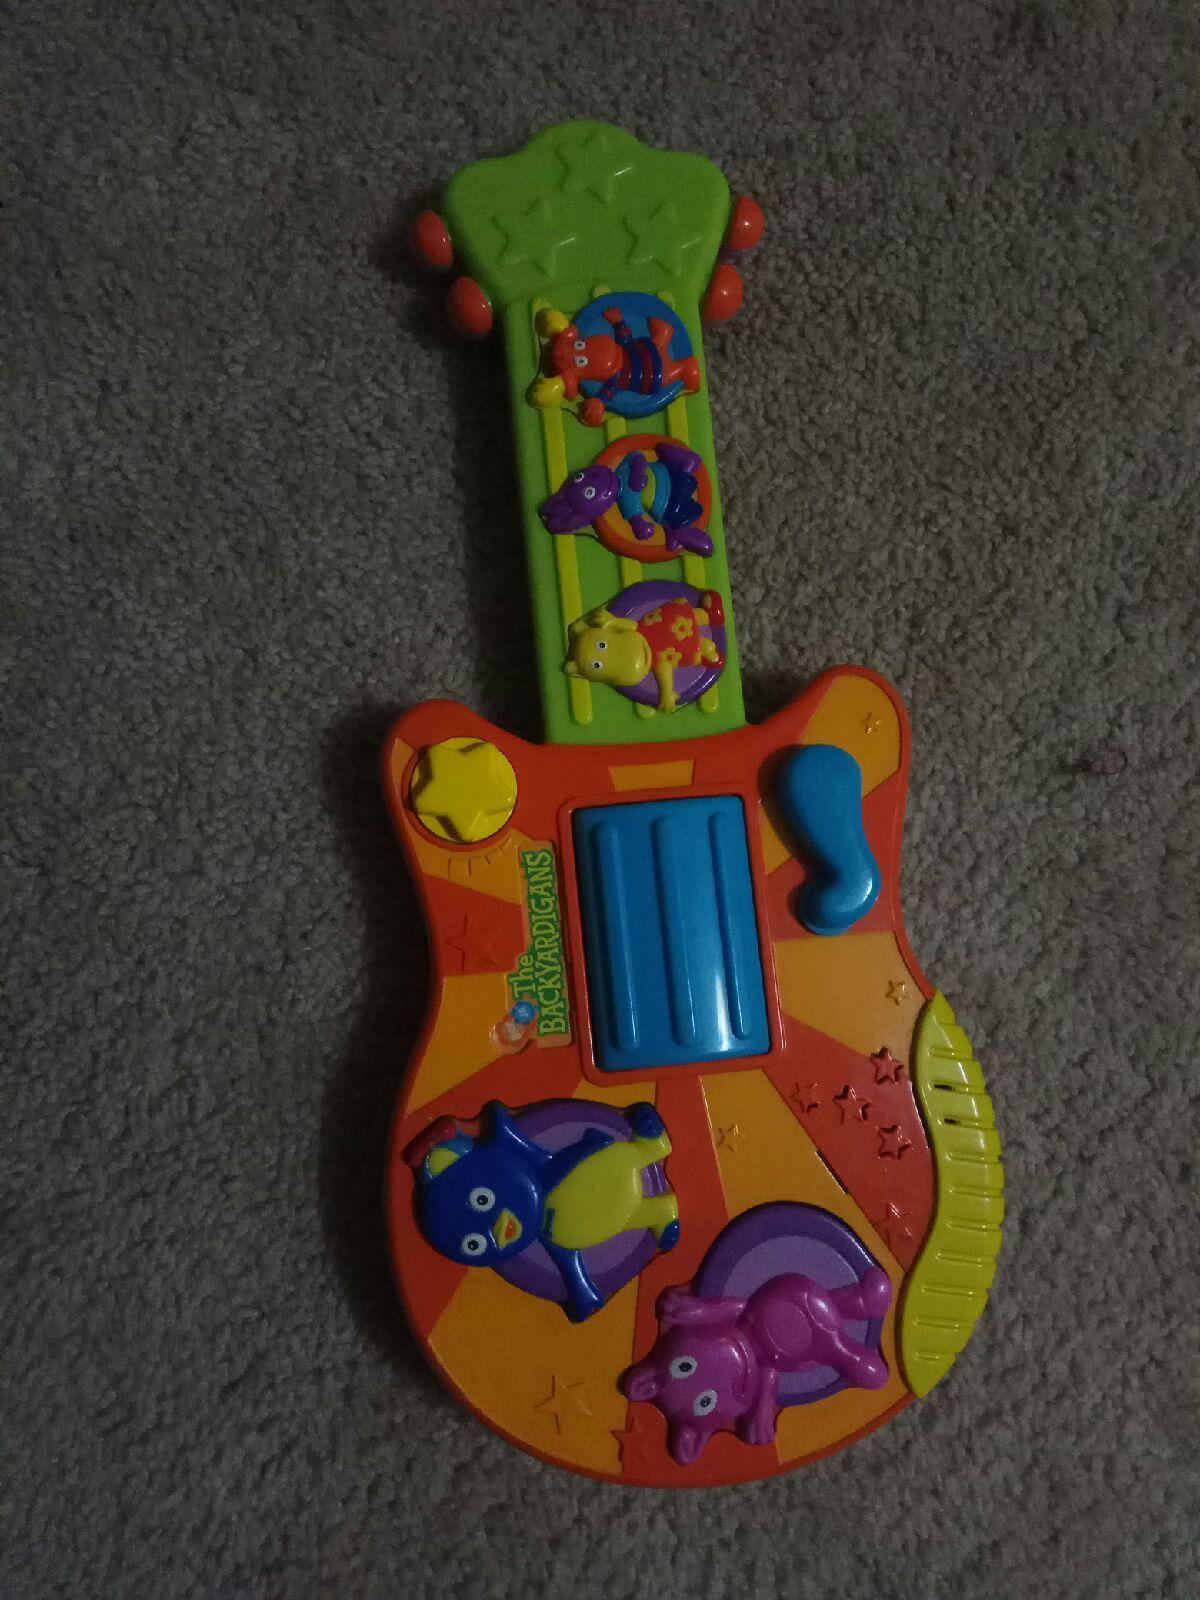 Toy Guitar for Kids Mercari BUY & SELL THINGS YOU LOVE